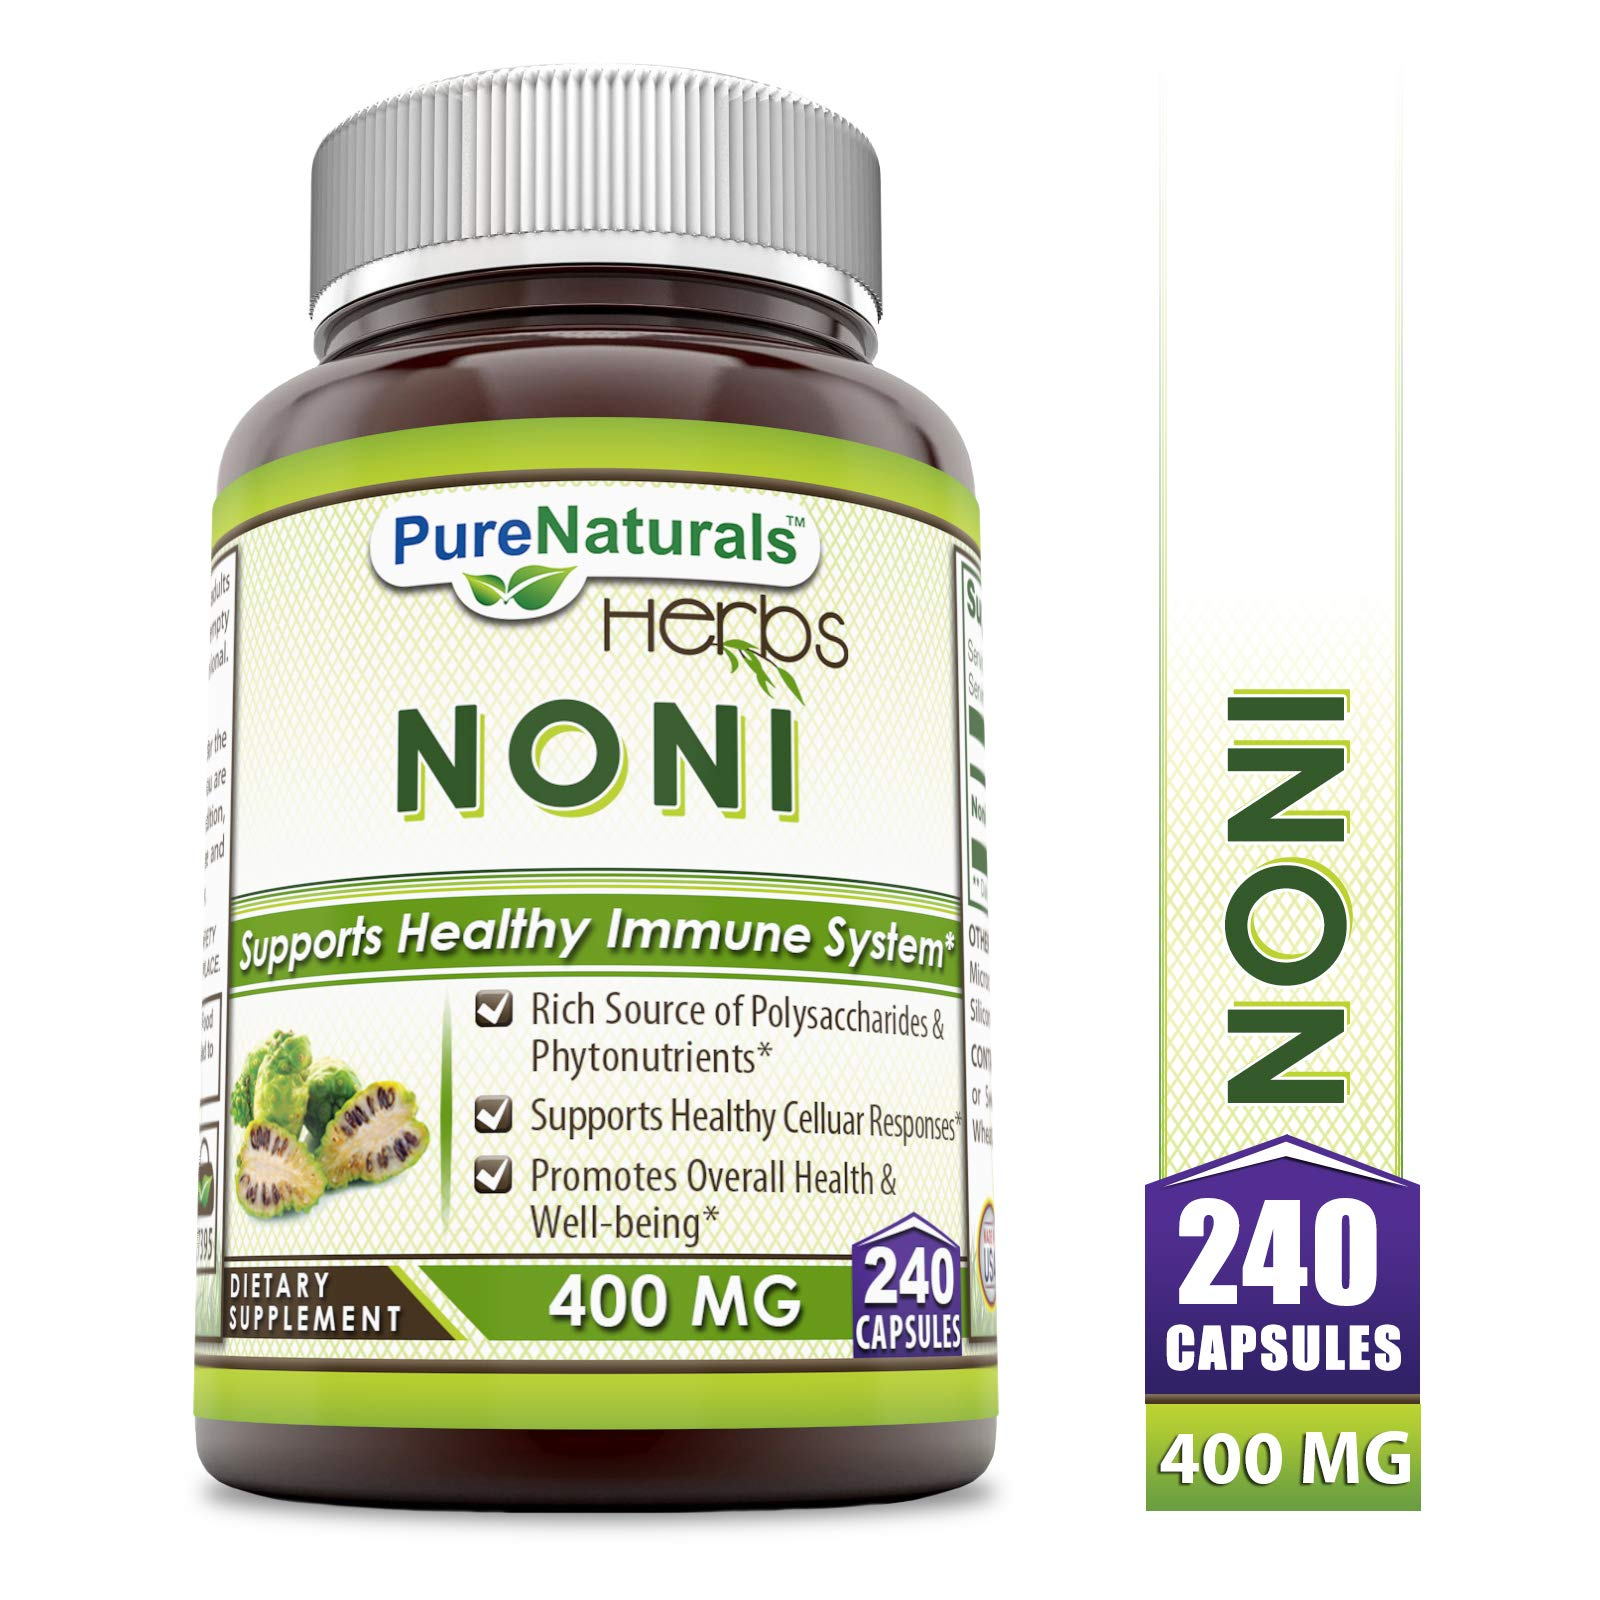 Pure Naturals Noni 400 mg 240 Capsules (Non-GMO) Rich Source of Polysacharides & Phytonutrients, Supports Healthy Celluar Responses, Promotes Overall Health & Well-Being by Pure Naturals